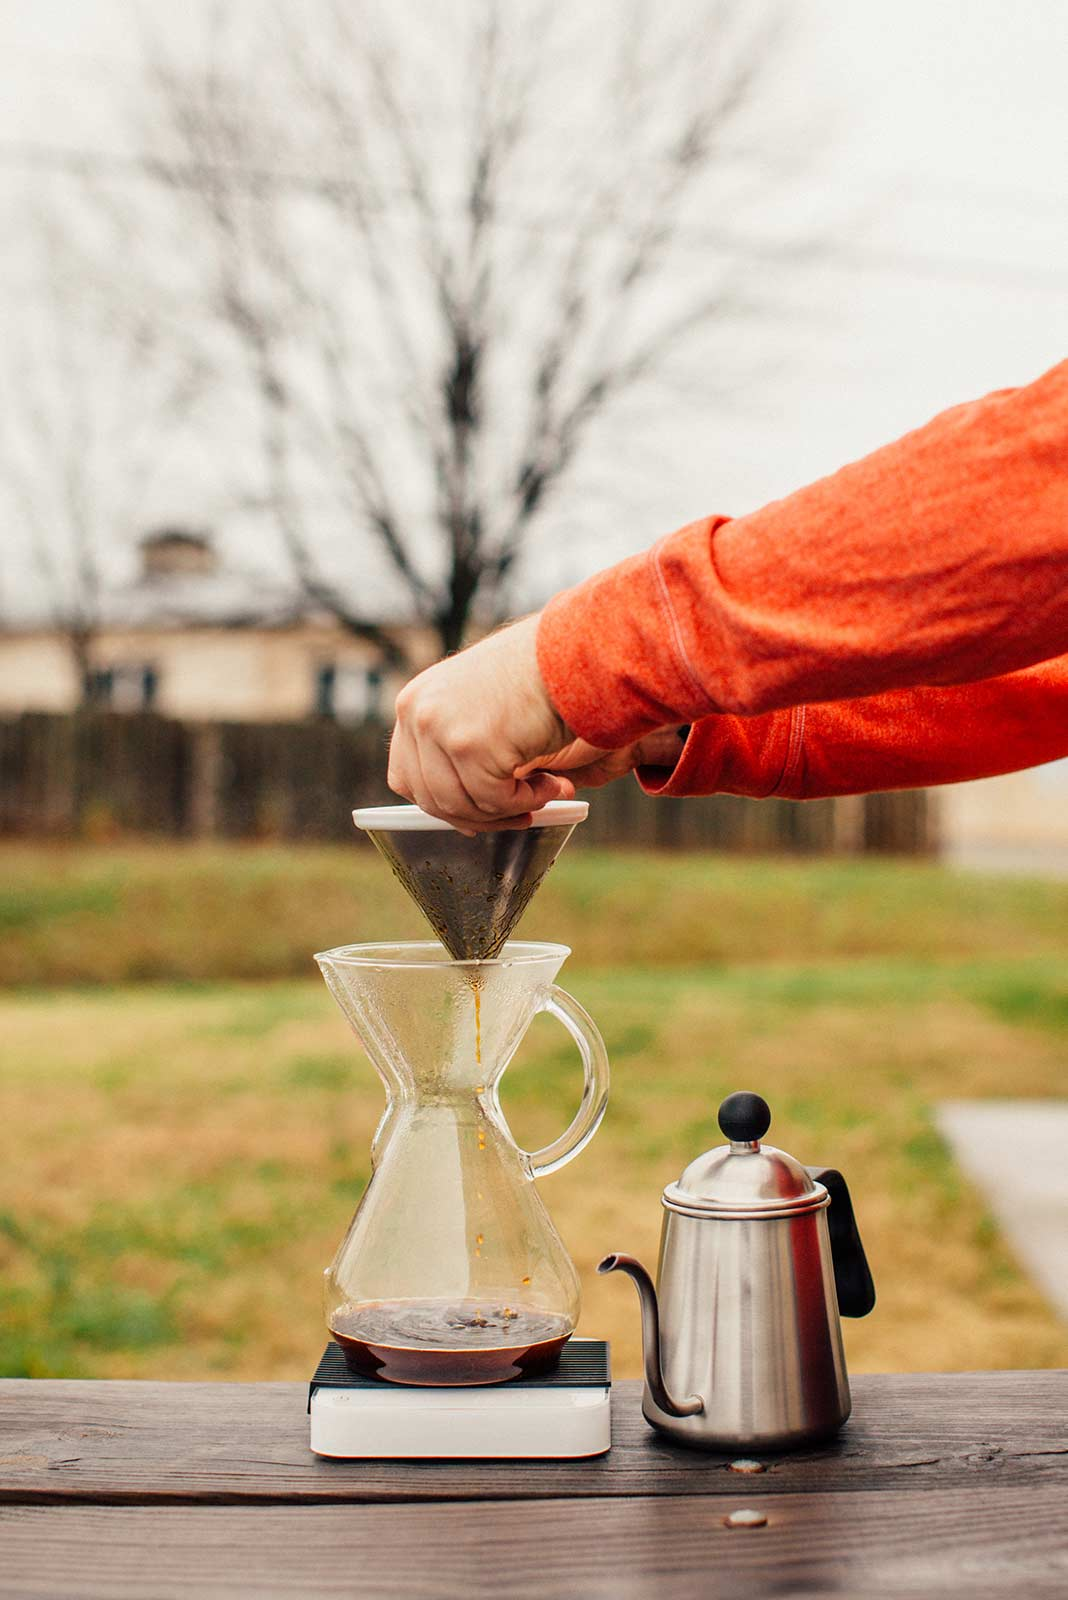 Kone with chemex and able kettle